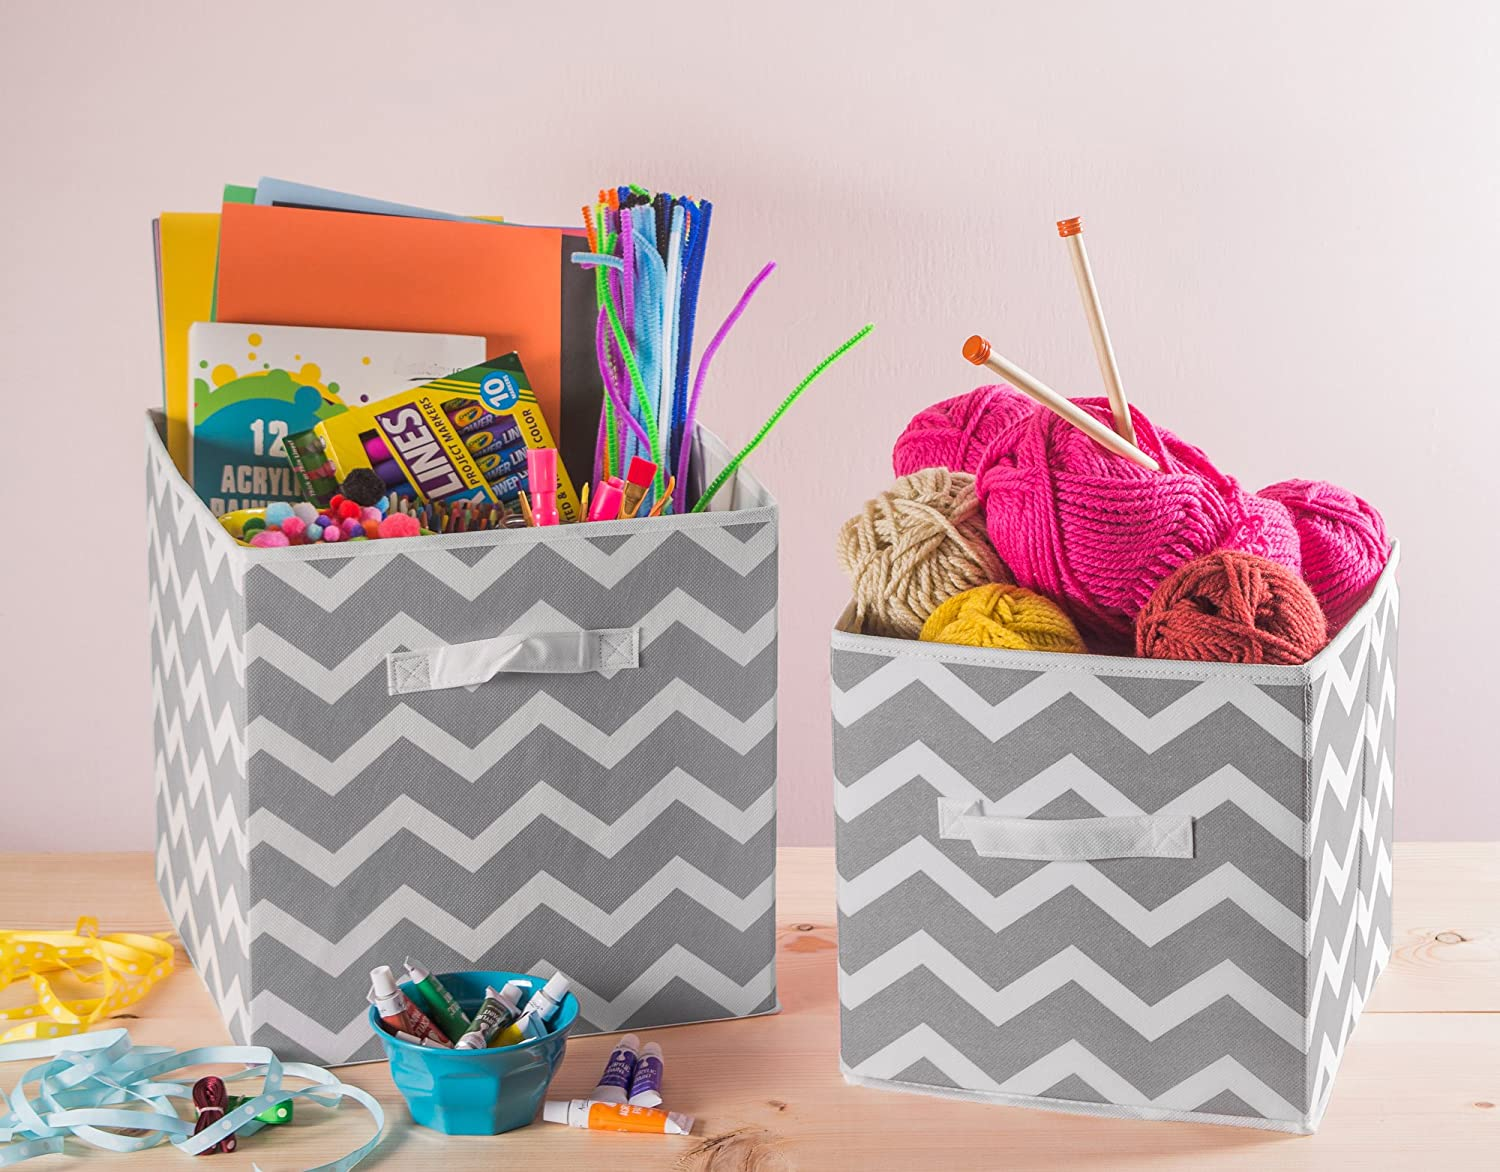 The Best Storage Container Sets (& Baskets) For Your Bathroom: Reviews & Buying Guide 20